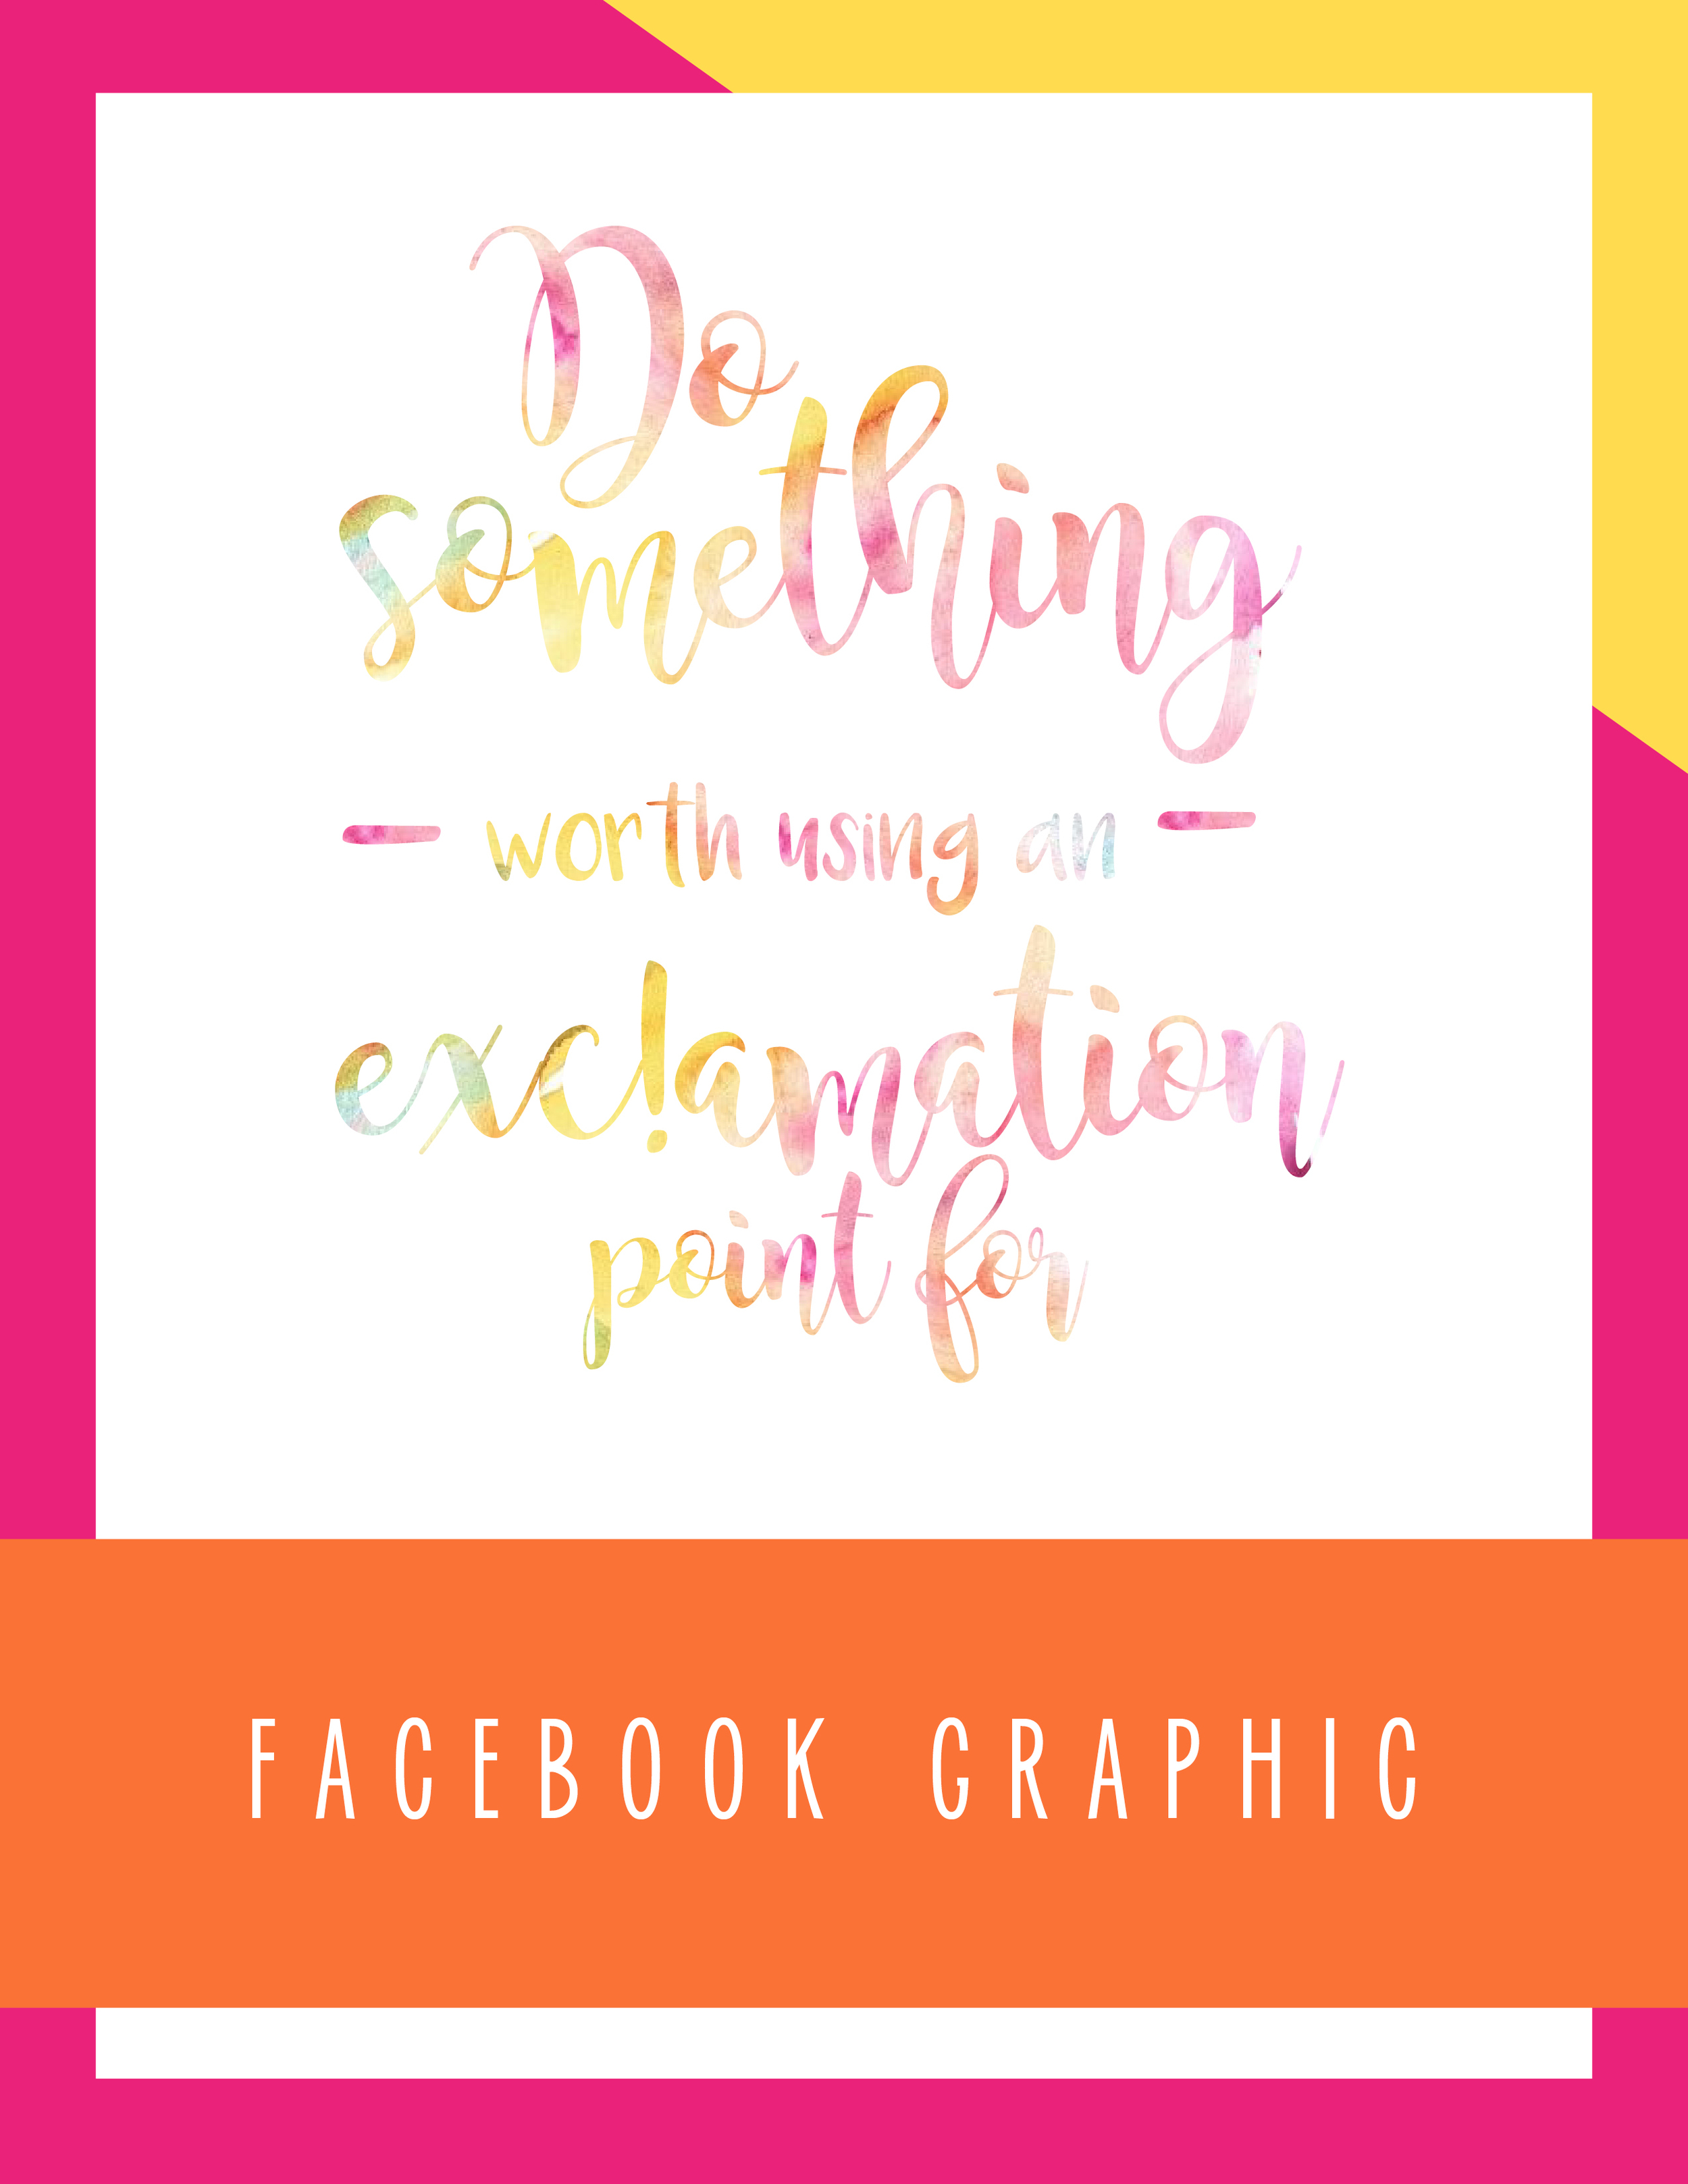 Bold & Pop: So Something Worth Using an Exclamation Point for Facebook Graphic